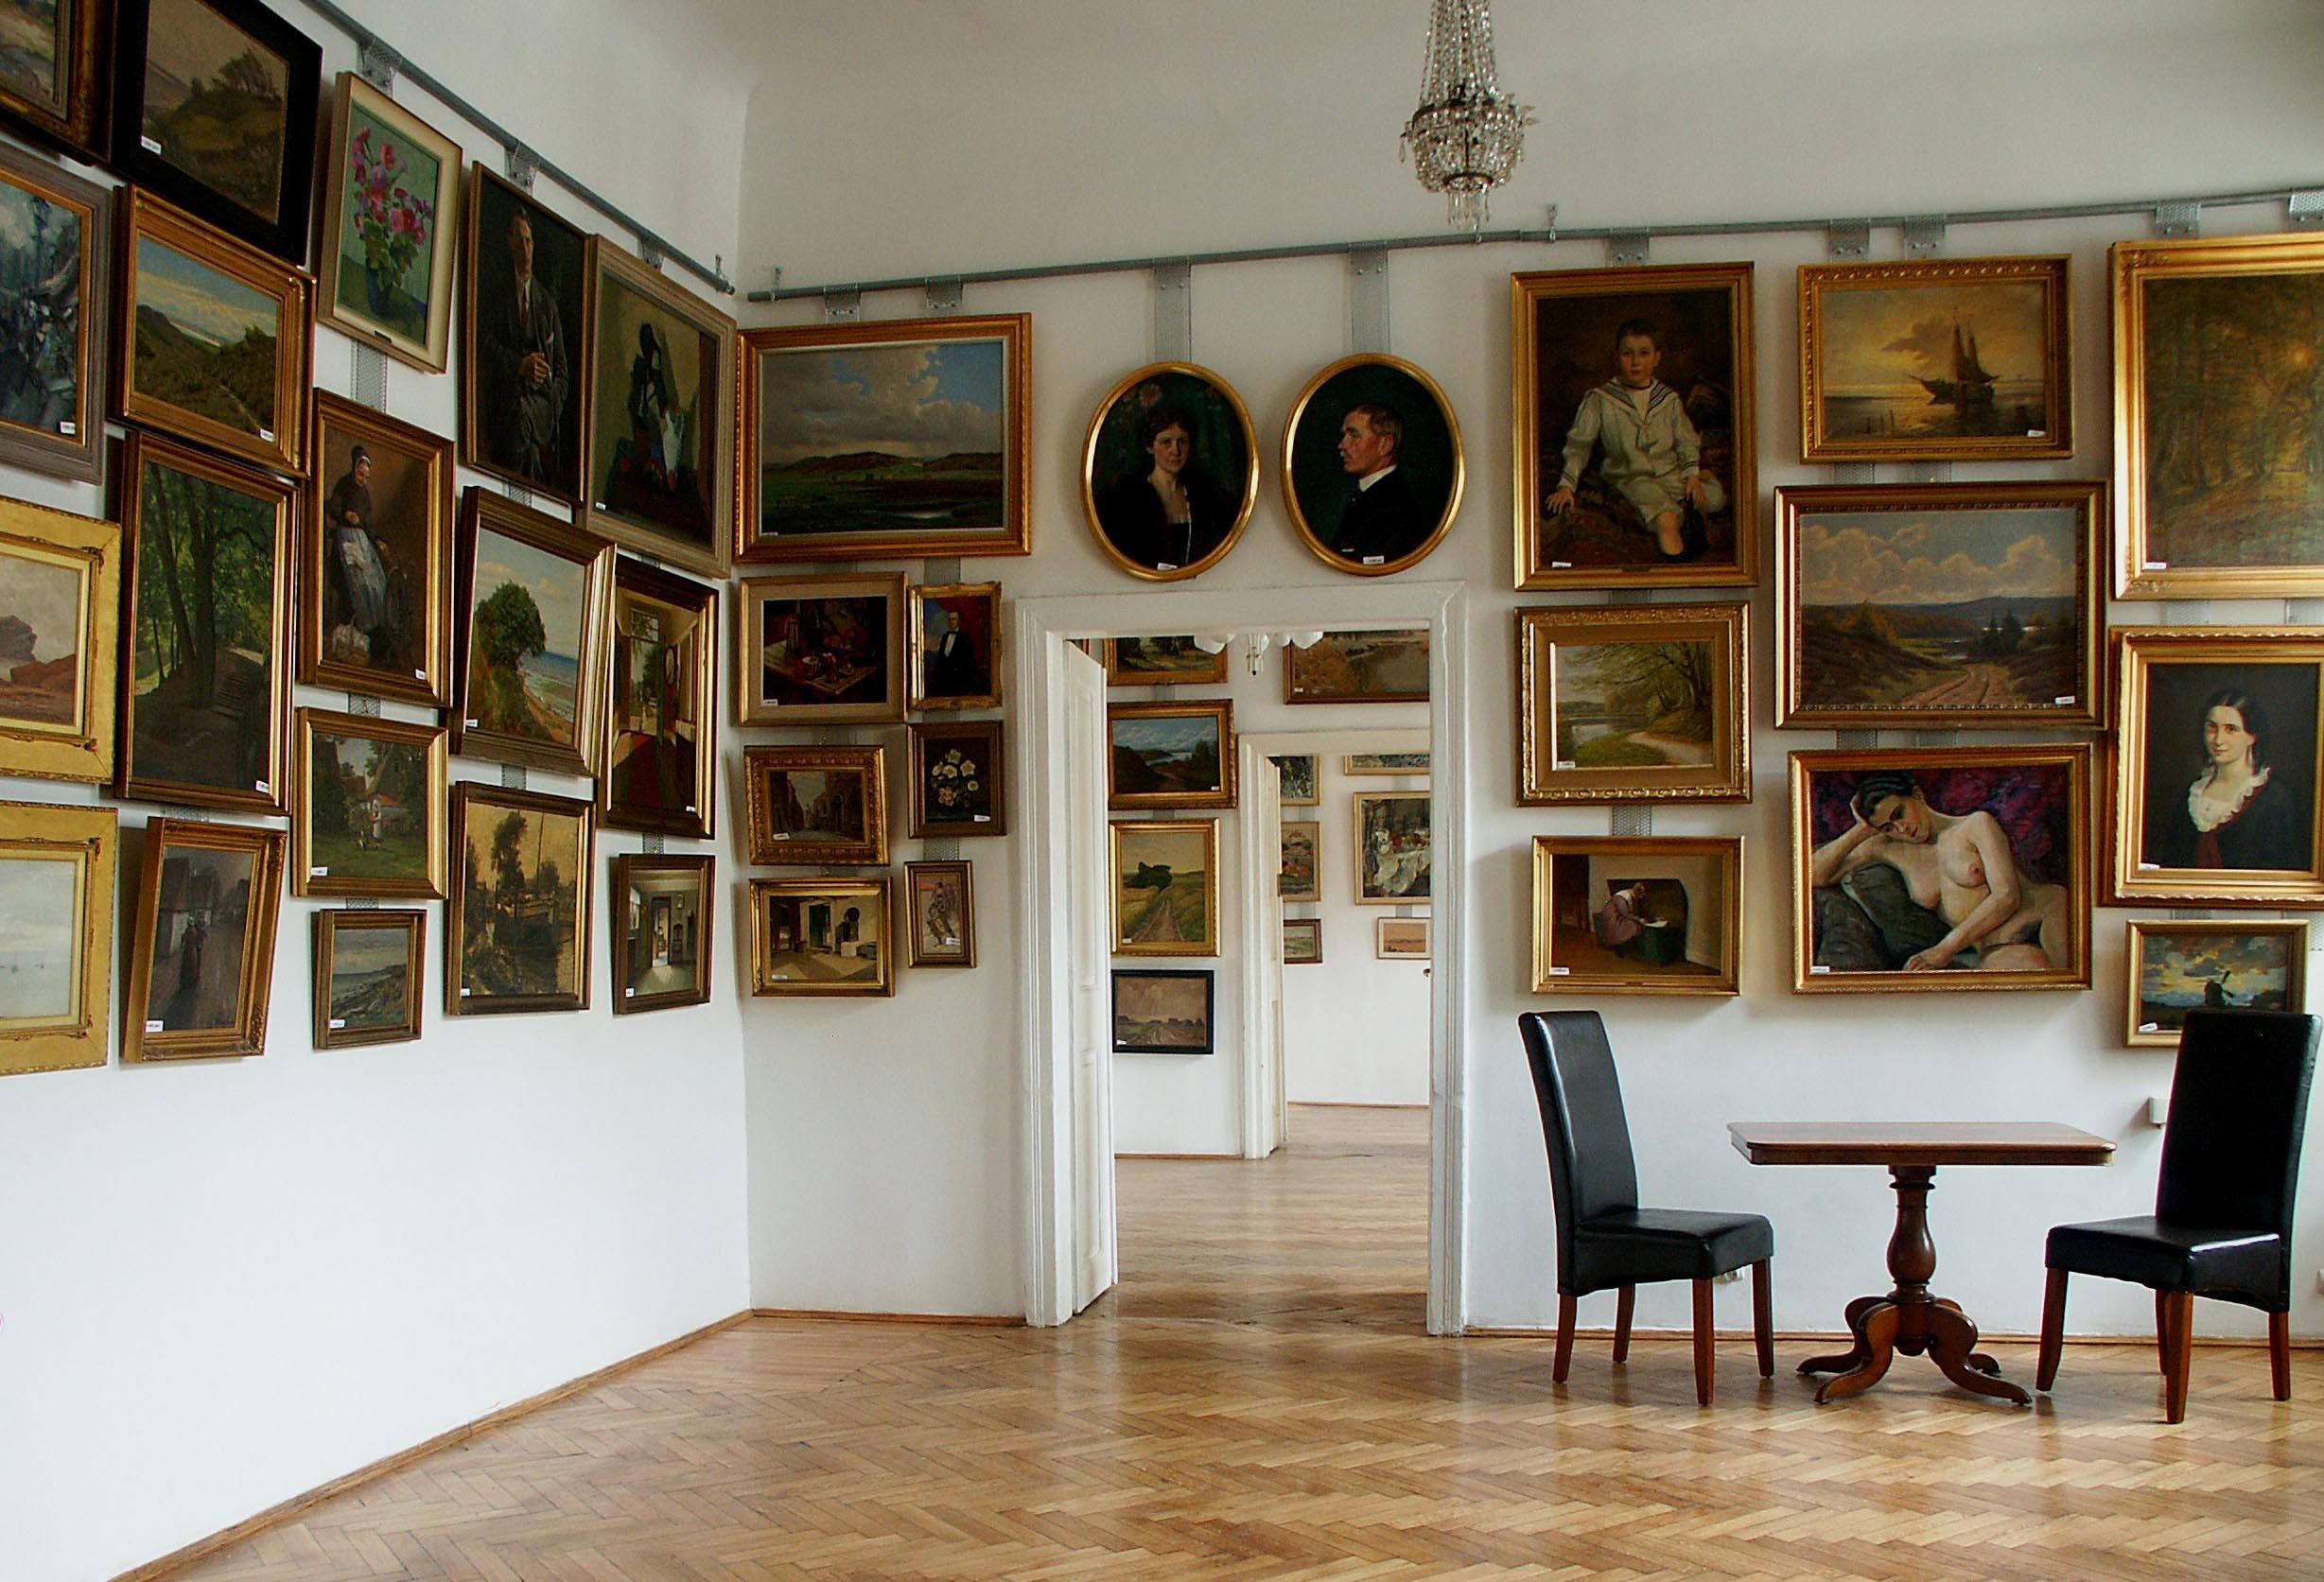 Oil paintings in the 1. room of ARTCHASE gallery.